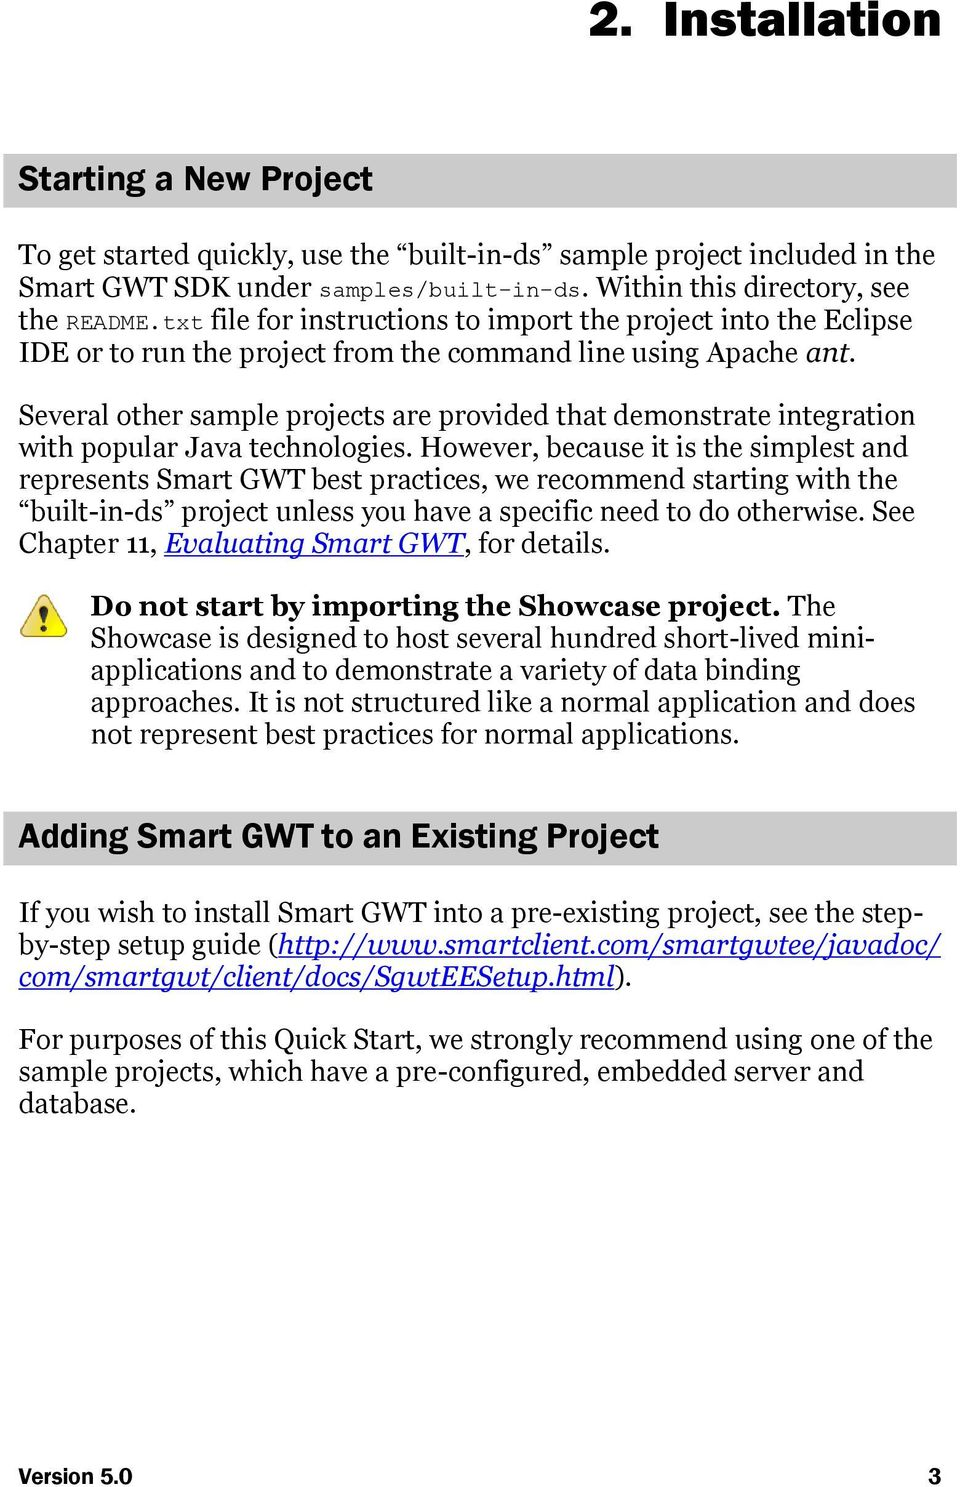 Several other sample projects are provided that demonstrate integration with popular Java technologies.